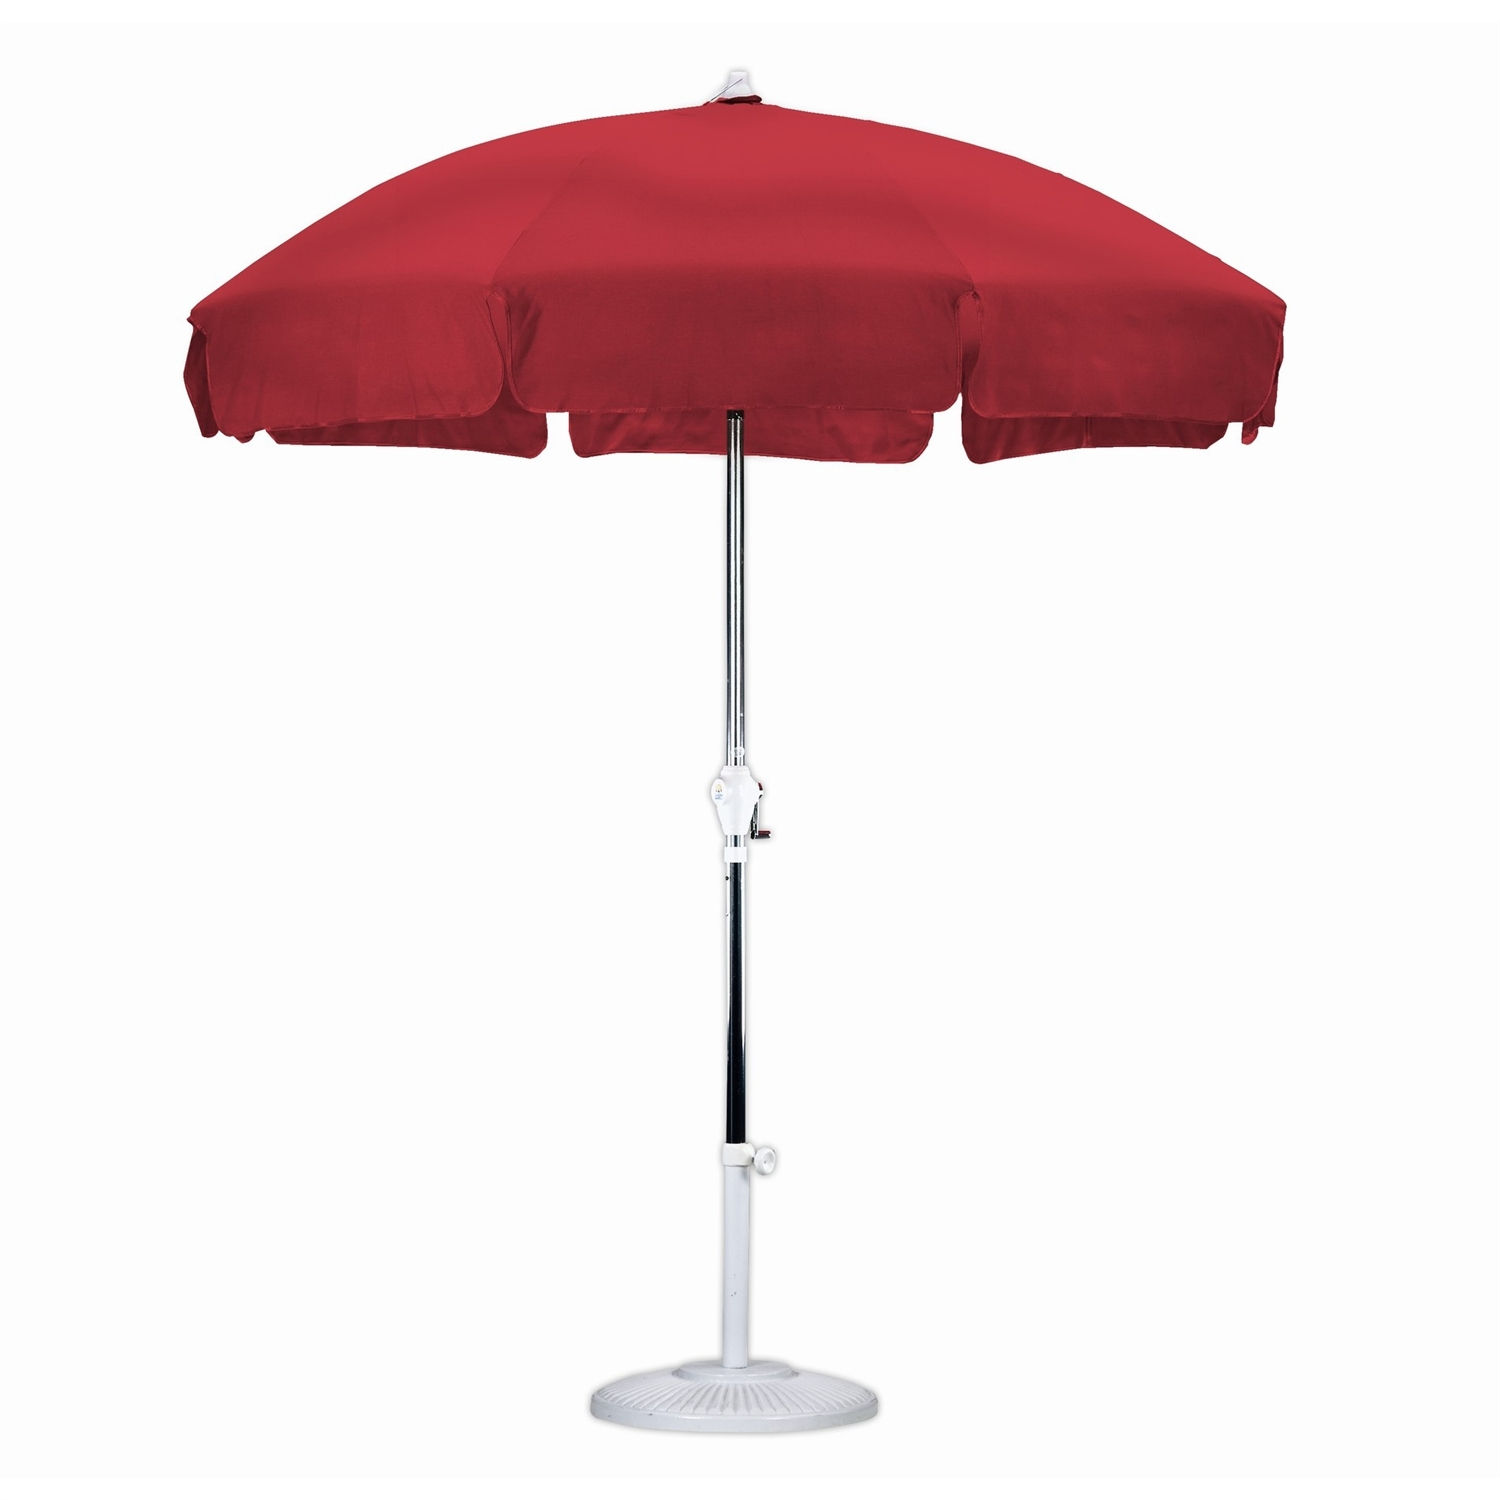 7 5 foot patio umbrella with push button tilt other